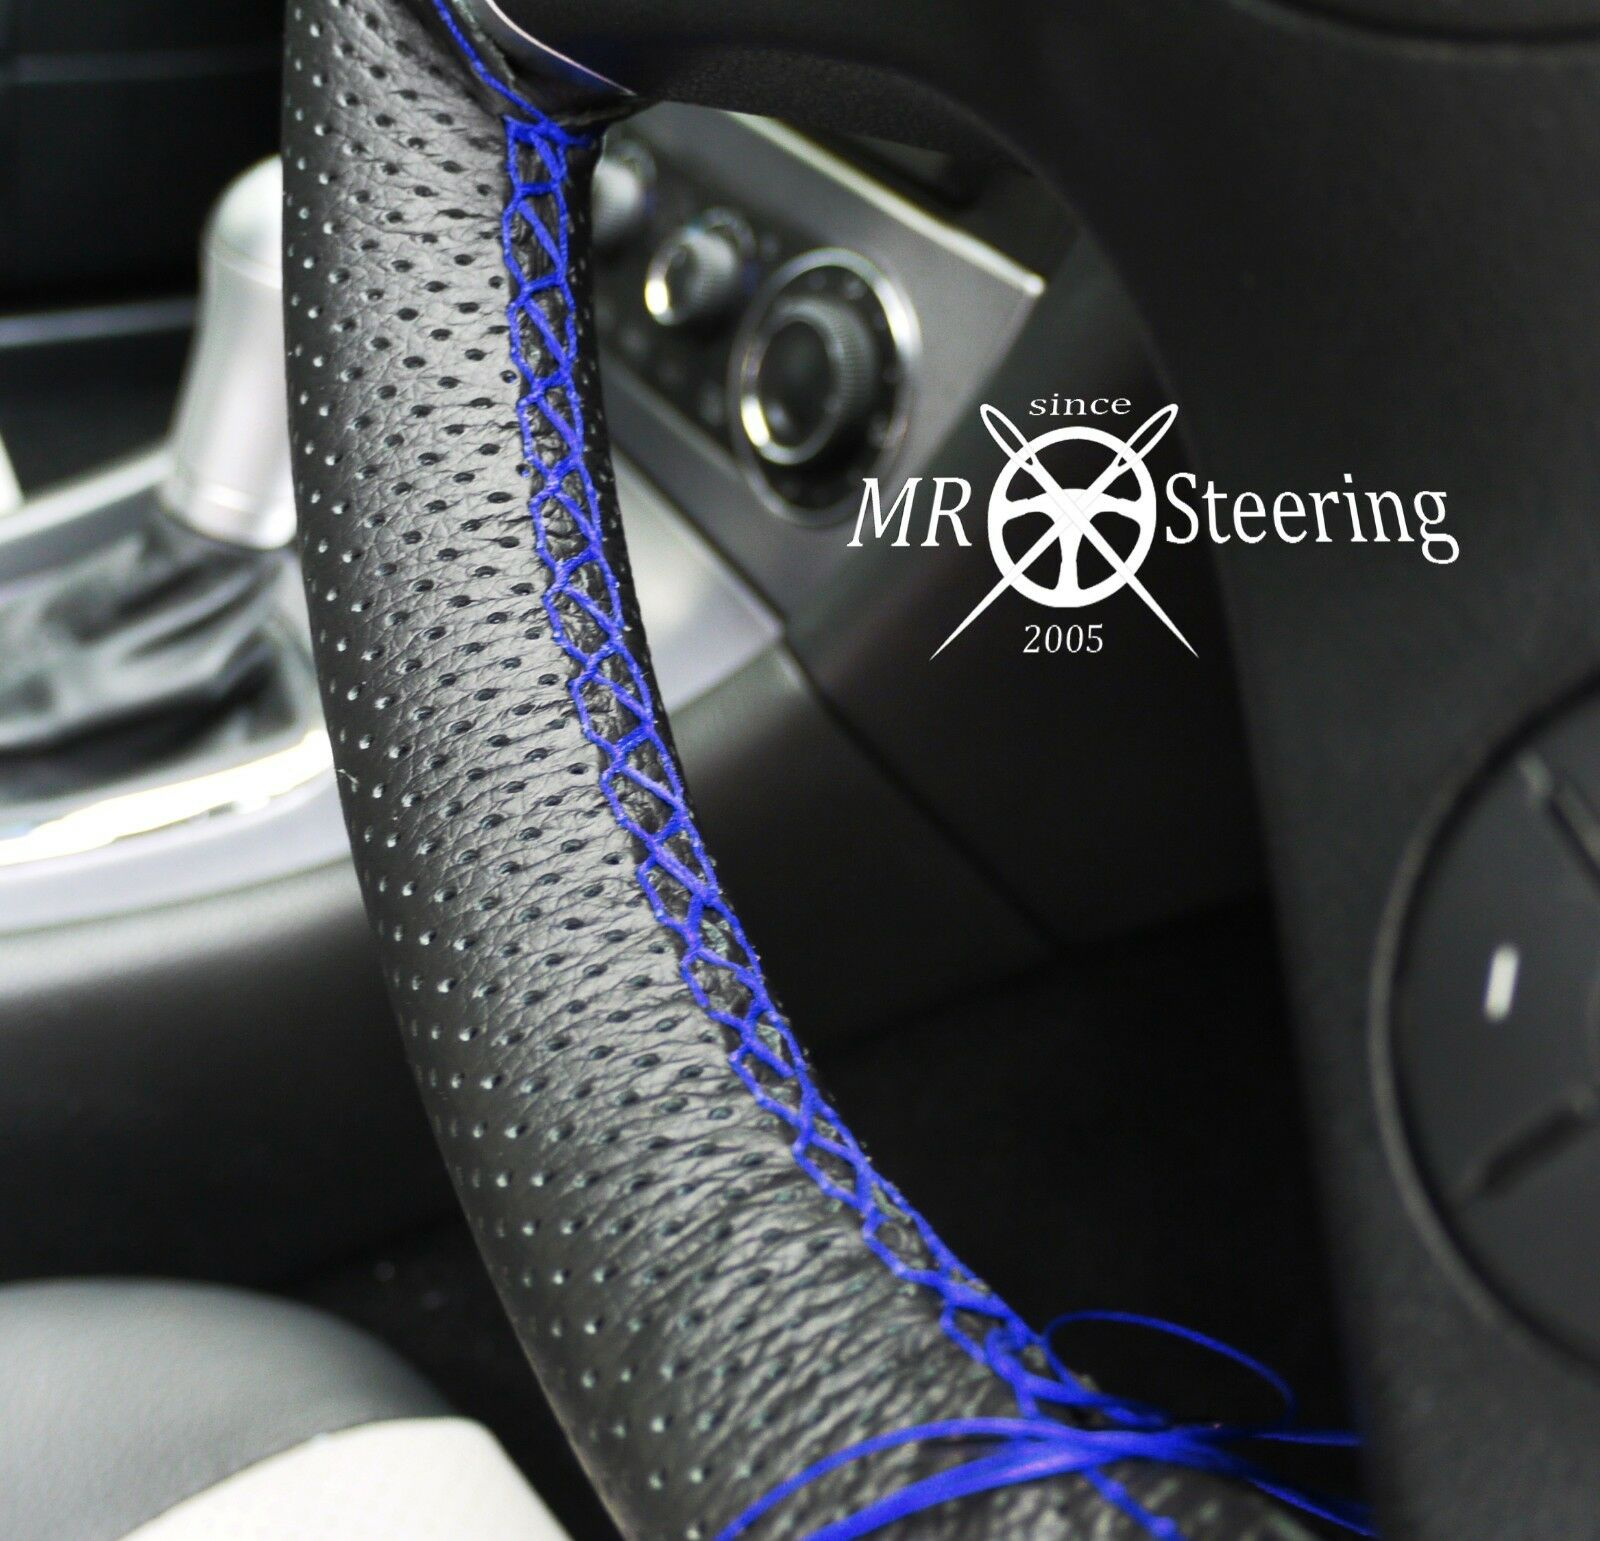 FOR MAZDA RX8 PERFORATED LEATHER STEERING WHEEL COVER 2003-12 ROYAL BLUE STRAP